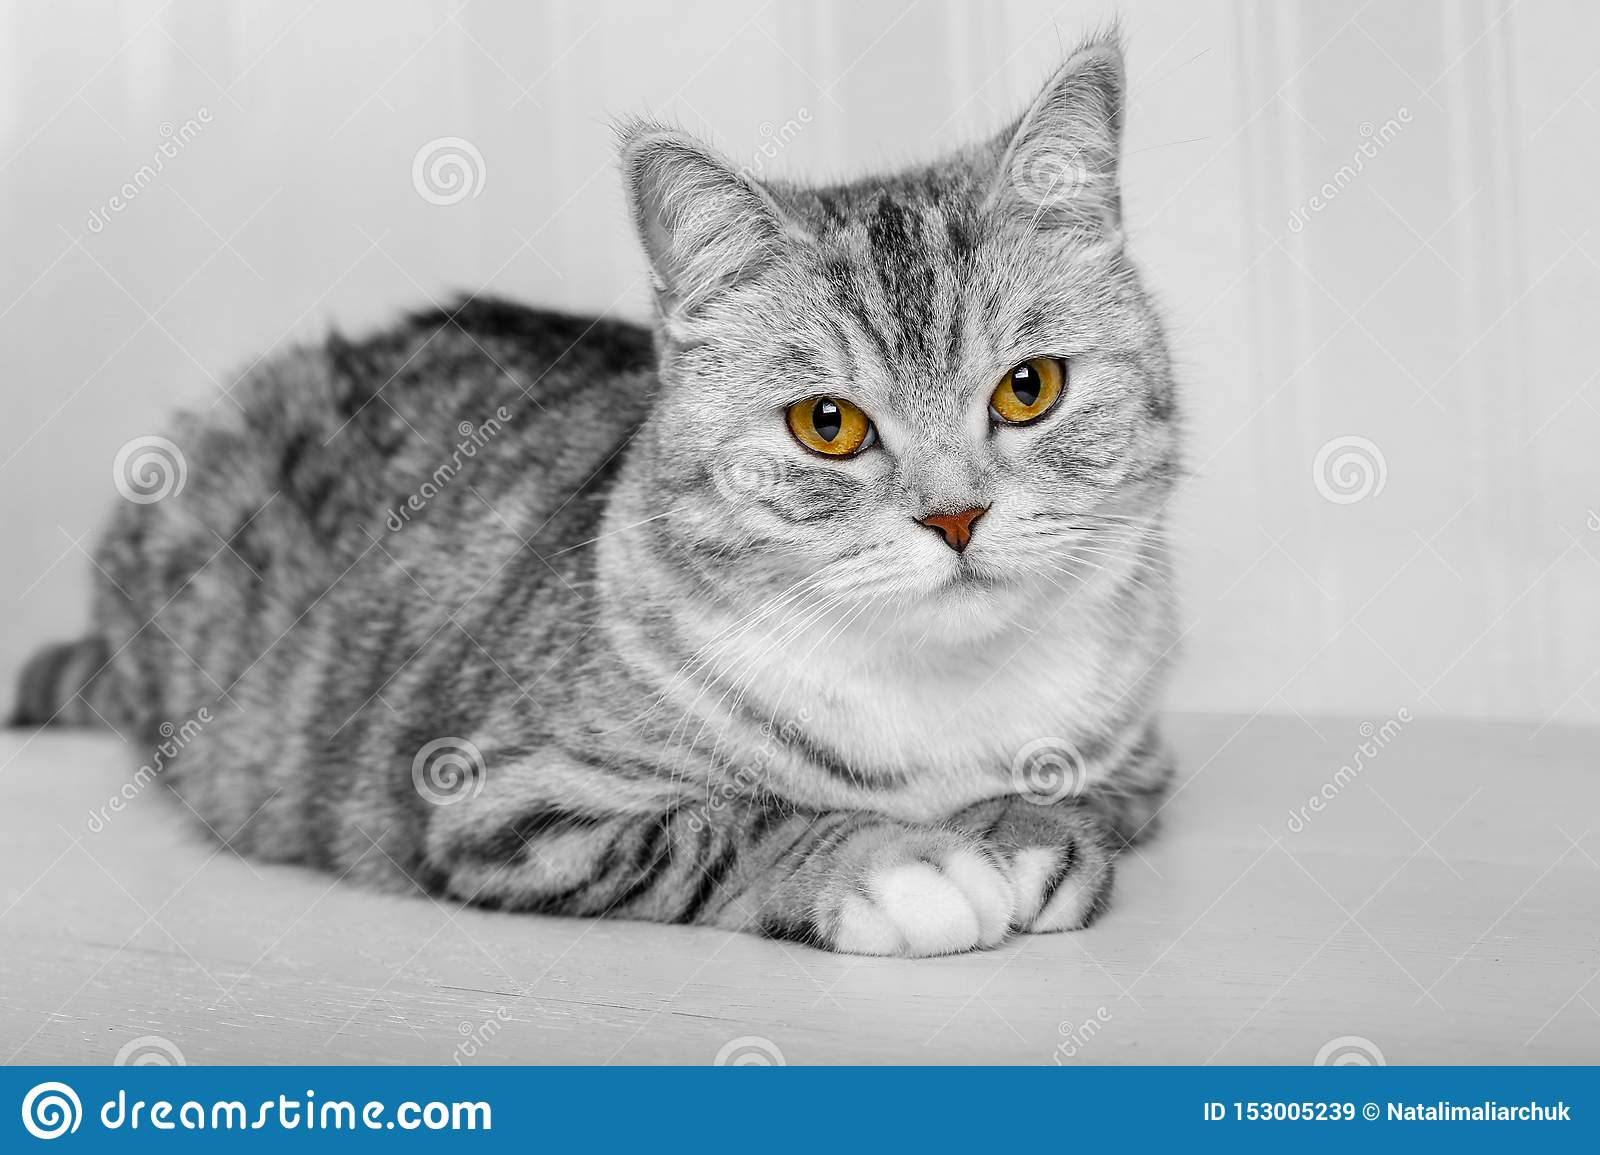 Fluffy gray beautiful adult cat, breed scottish, close portrait on white background with beautiful eyes. Portrait of scottish grey